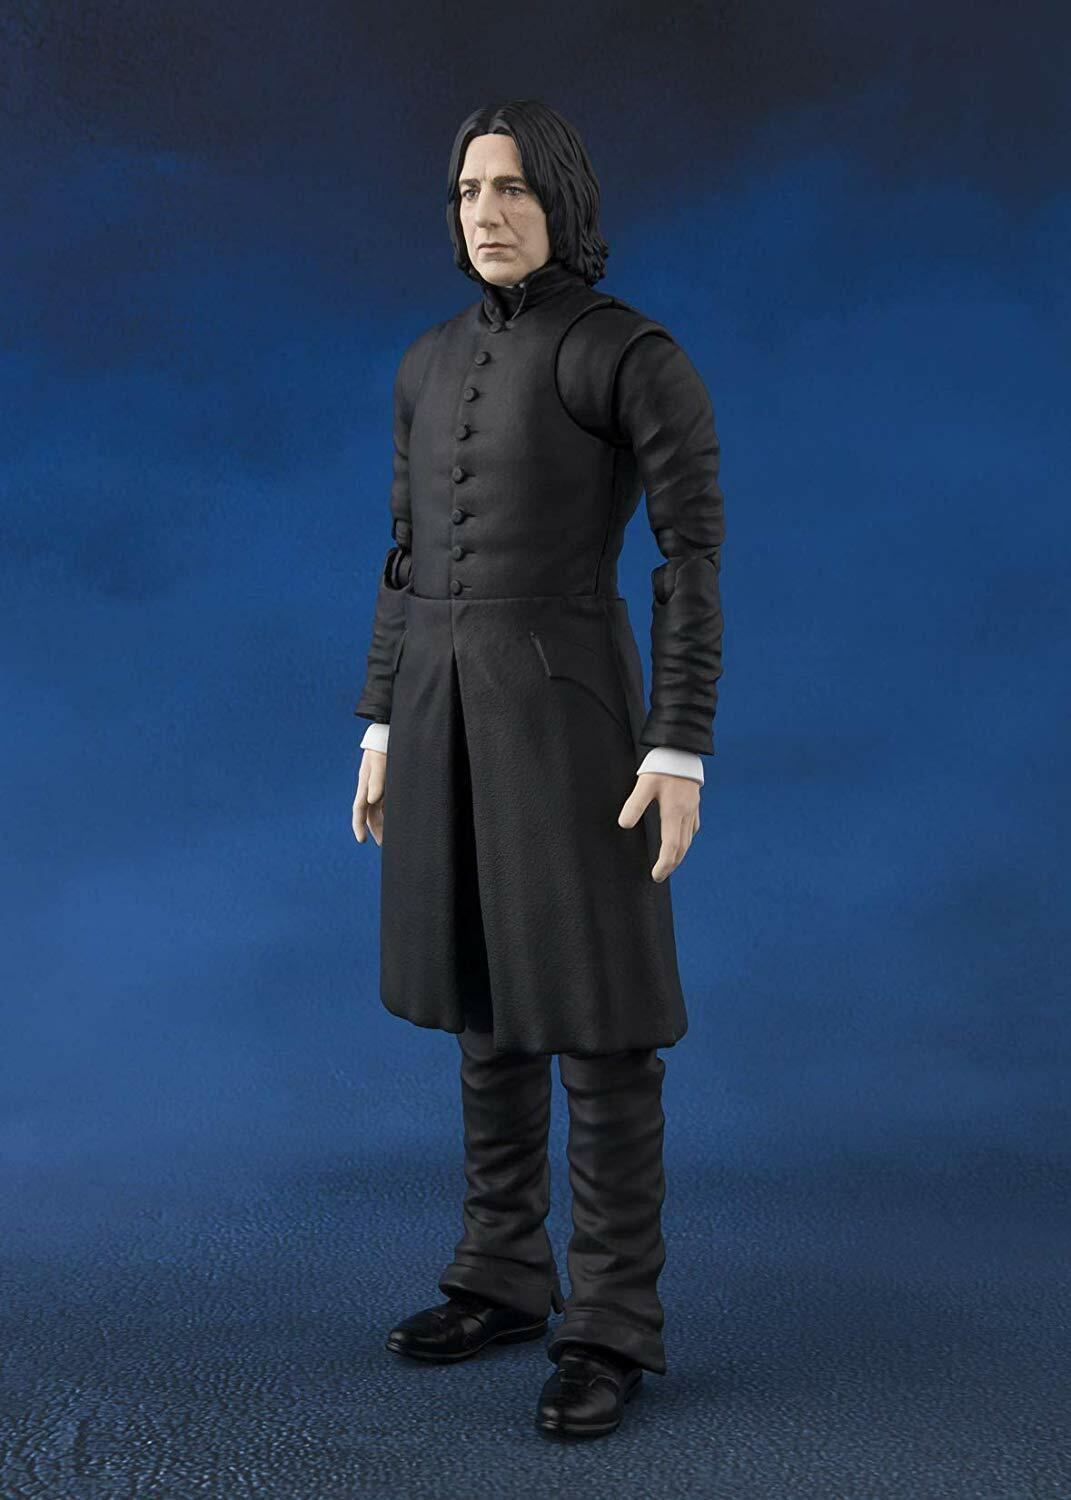 BANDAI S.H. Figuarts Harry Potter and the Sorcerer's Stone Sables Snape Figure